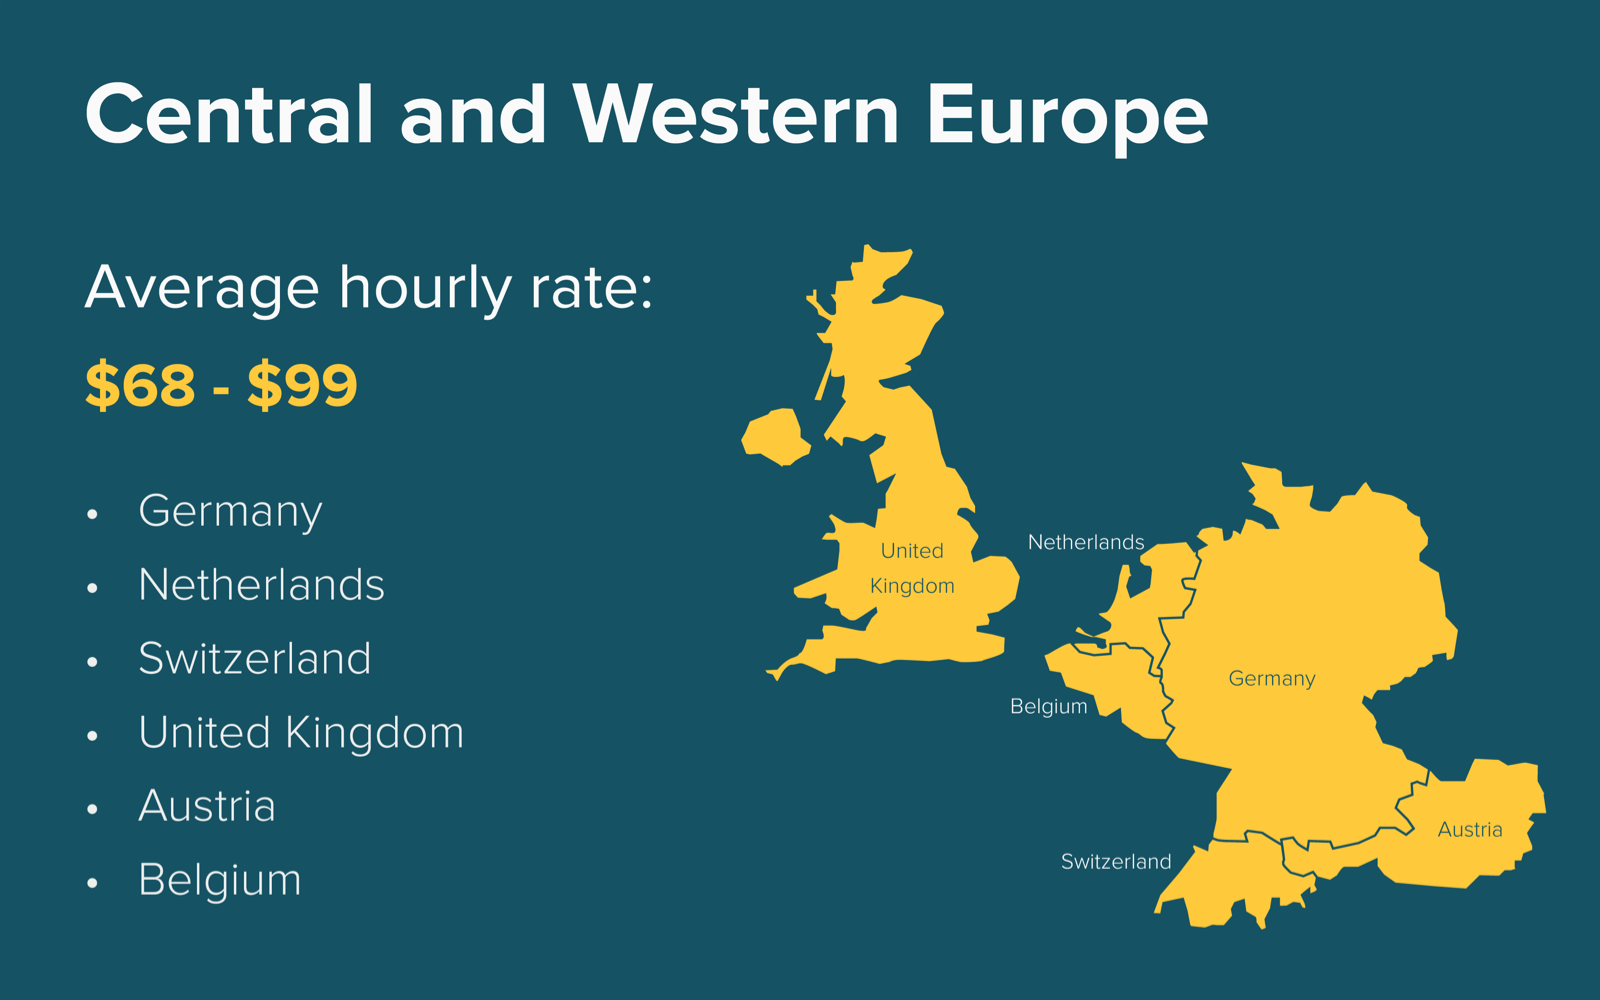 Hourly rates of software development in Central and Western Europe